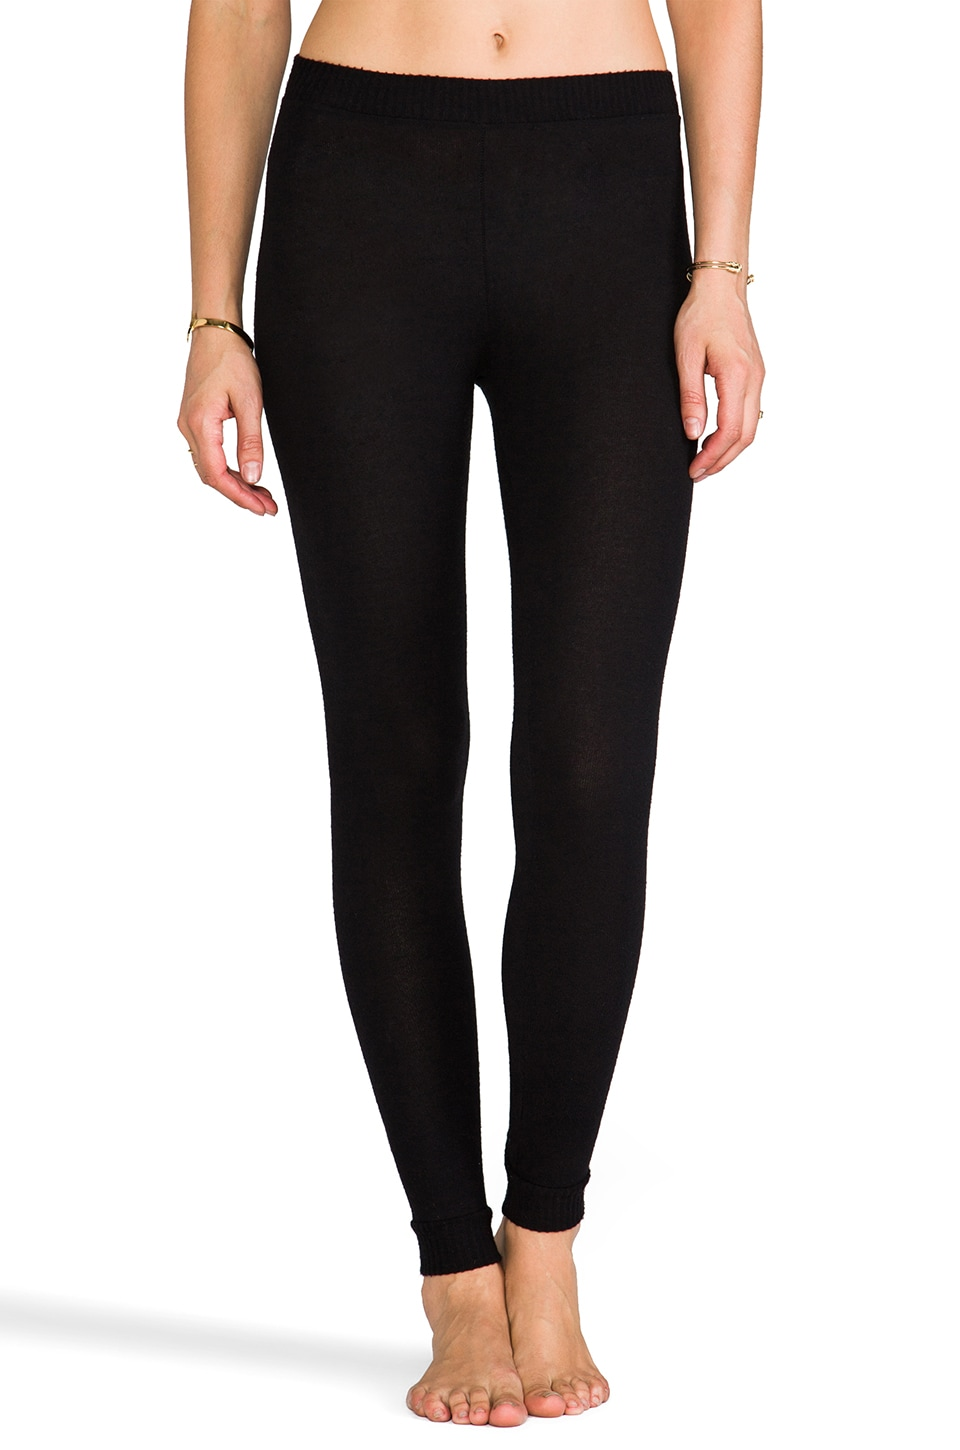 eberjey Cozy Time Legging in Black